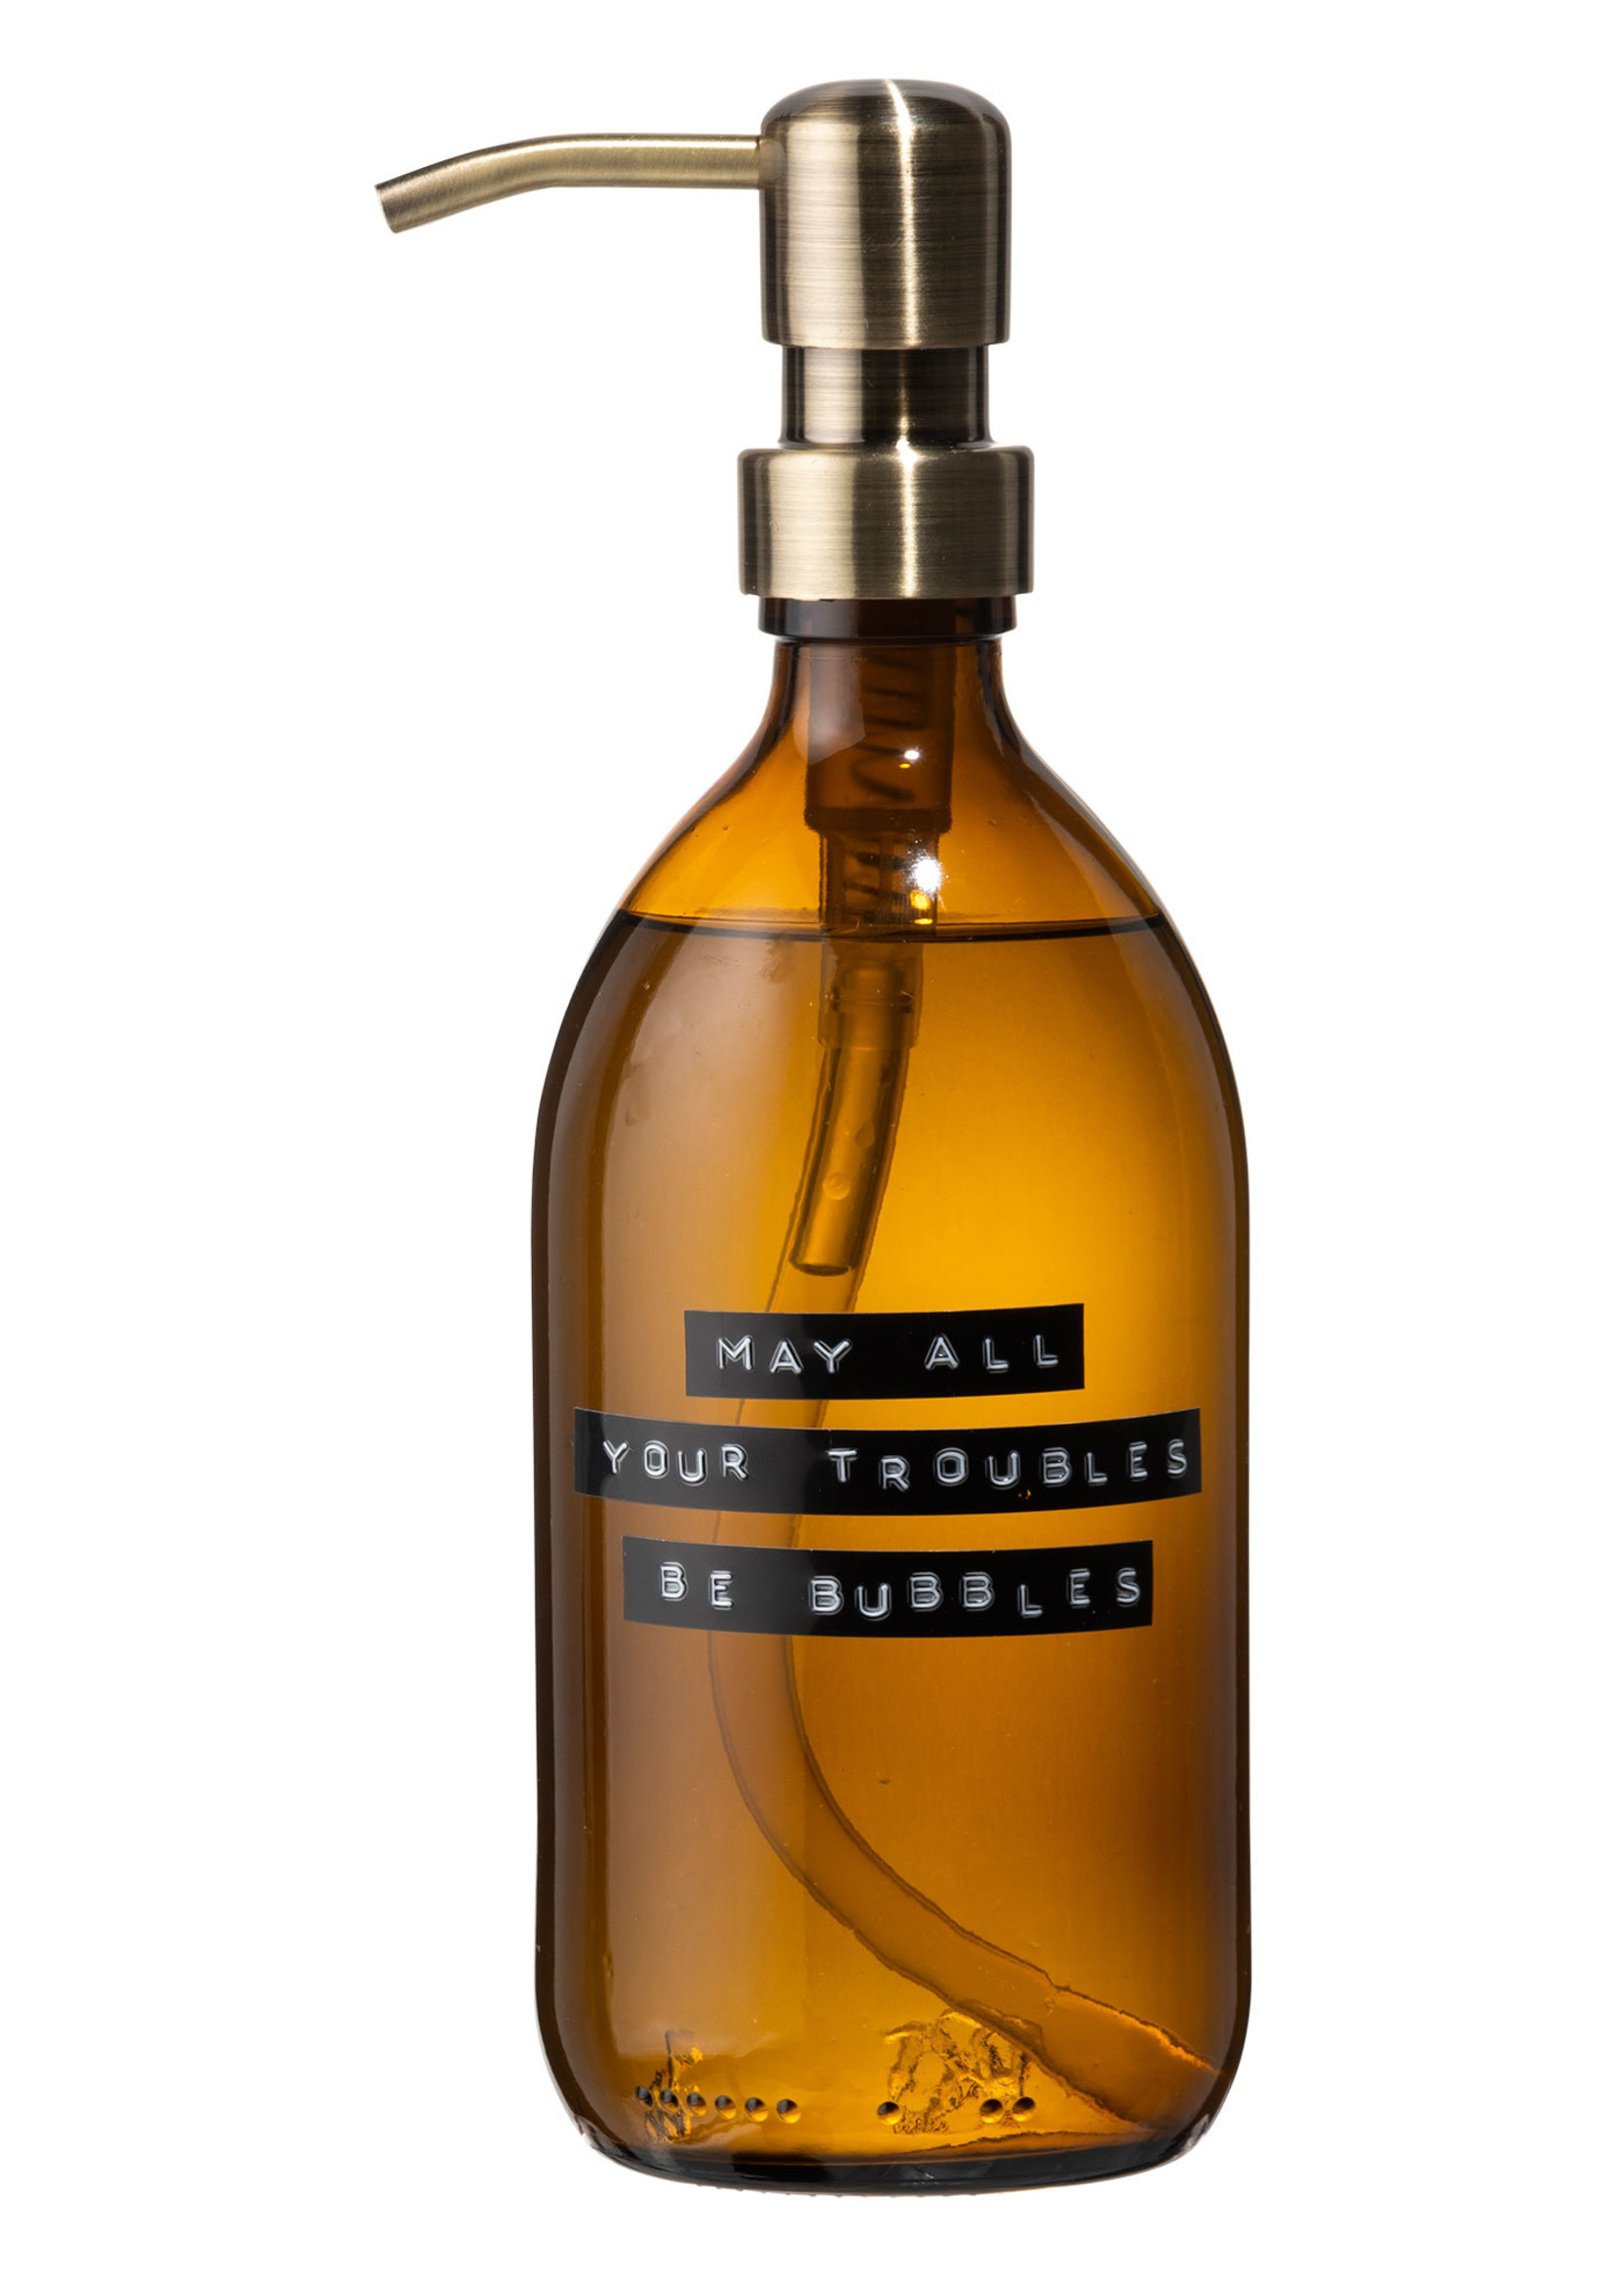 WELLmark WELLmark - Handzeep bamboe -  500ml - 'may all your troubles be bubbles'